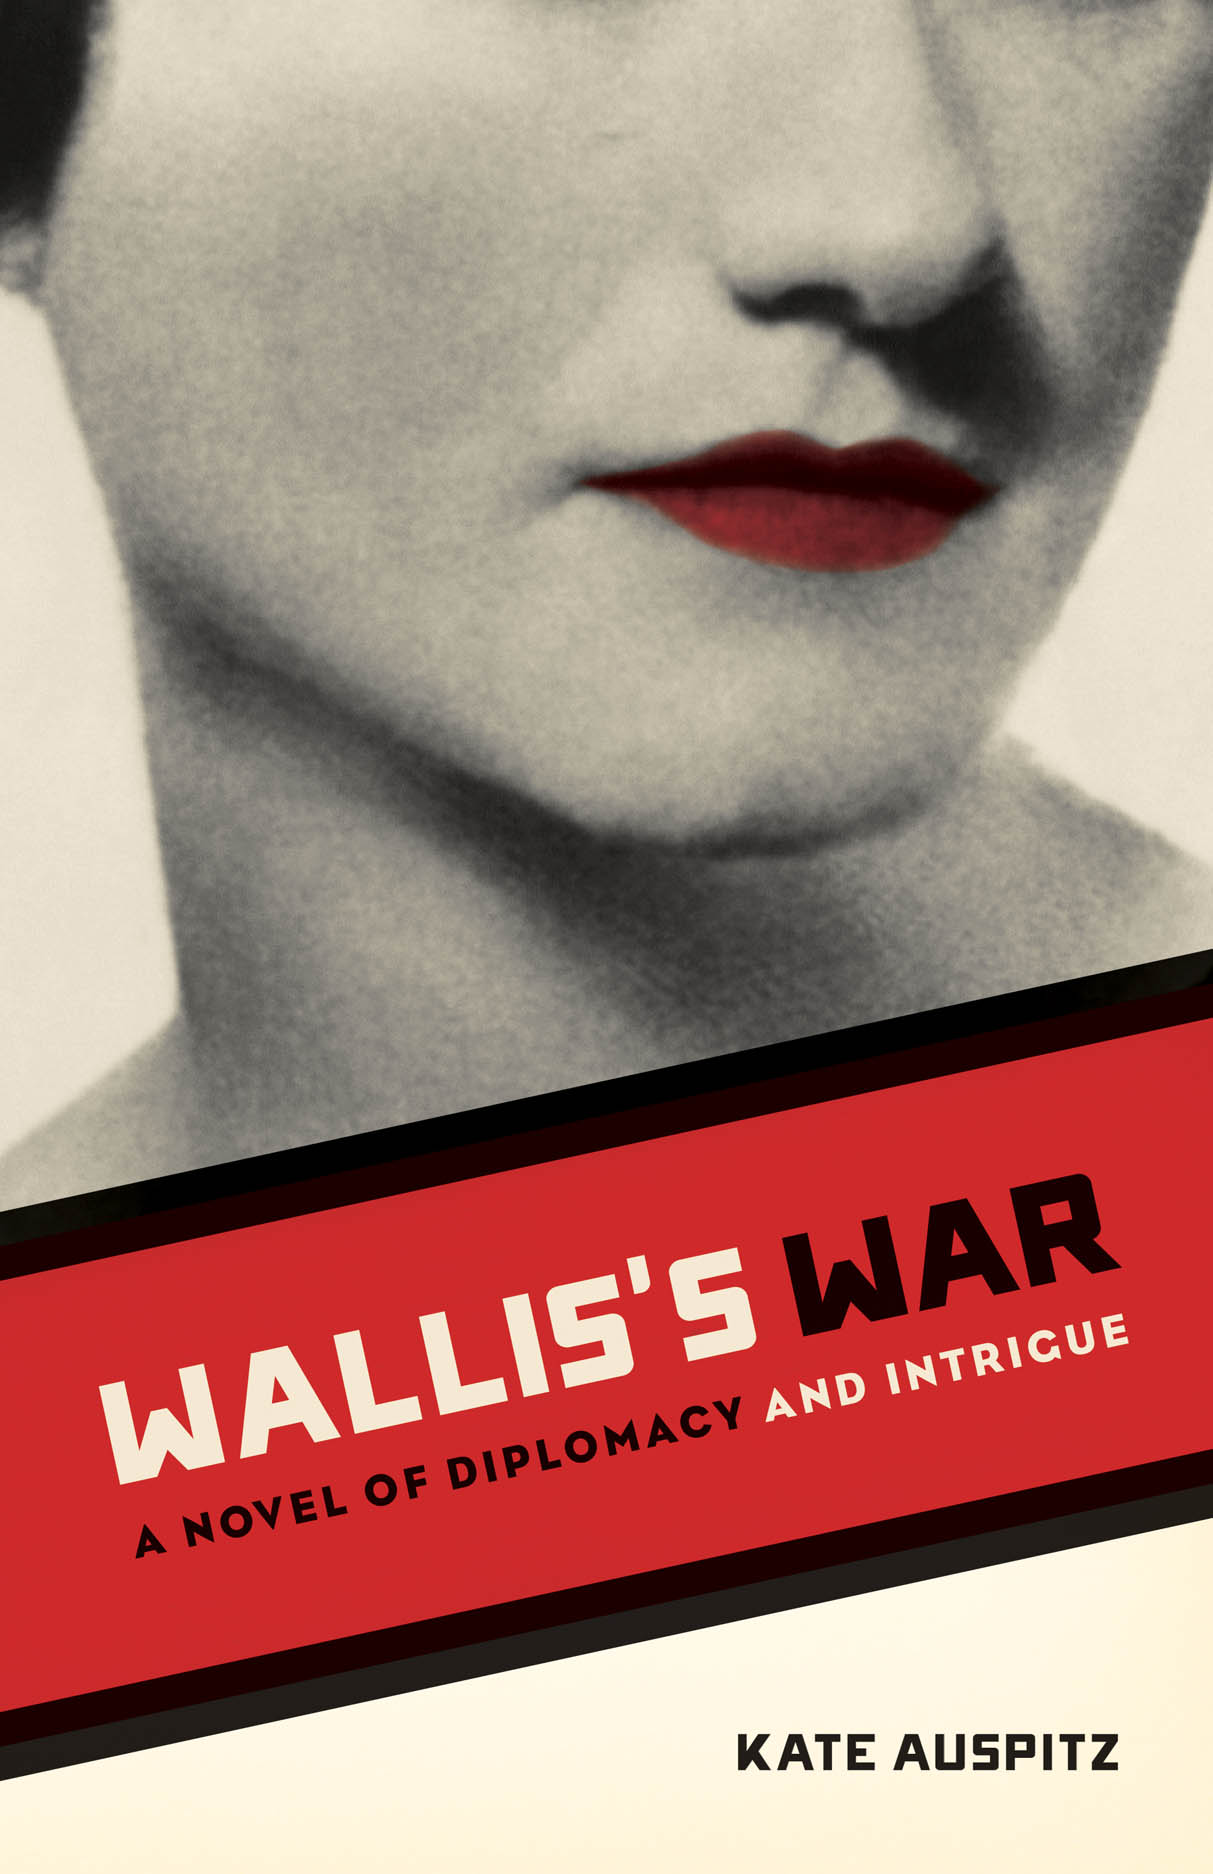 Wallis's War: A Novel of Diplomacy and Intrigue